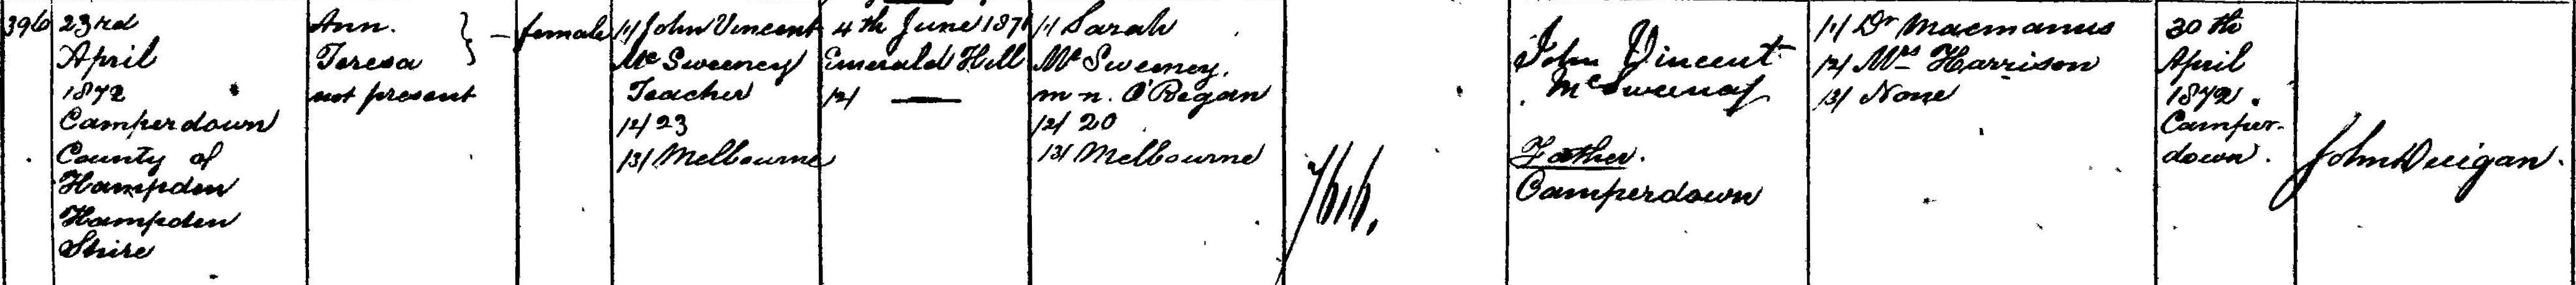 Annie McSweeney Birth Certificate 1872 cropped